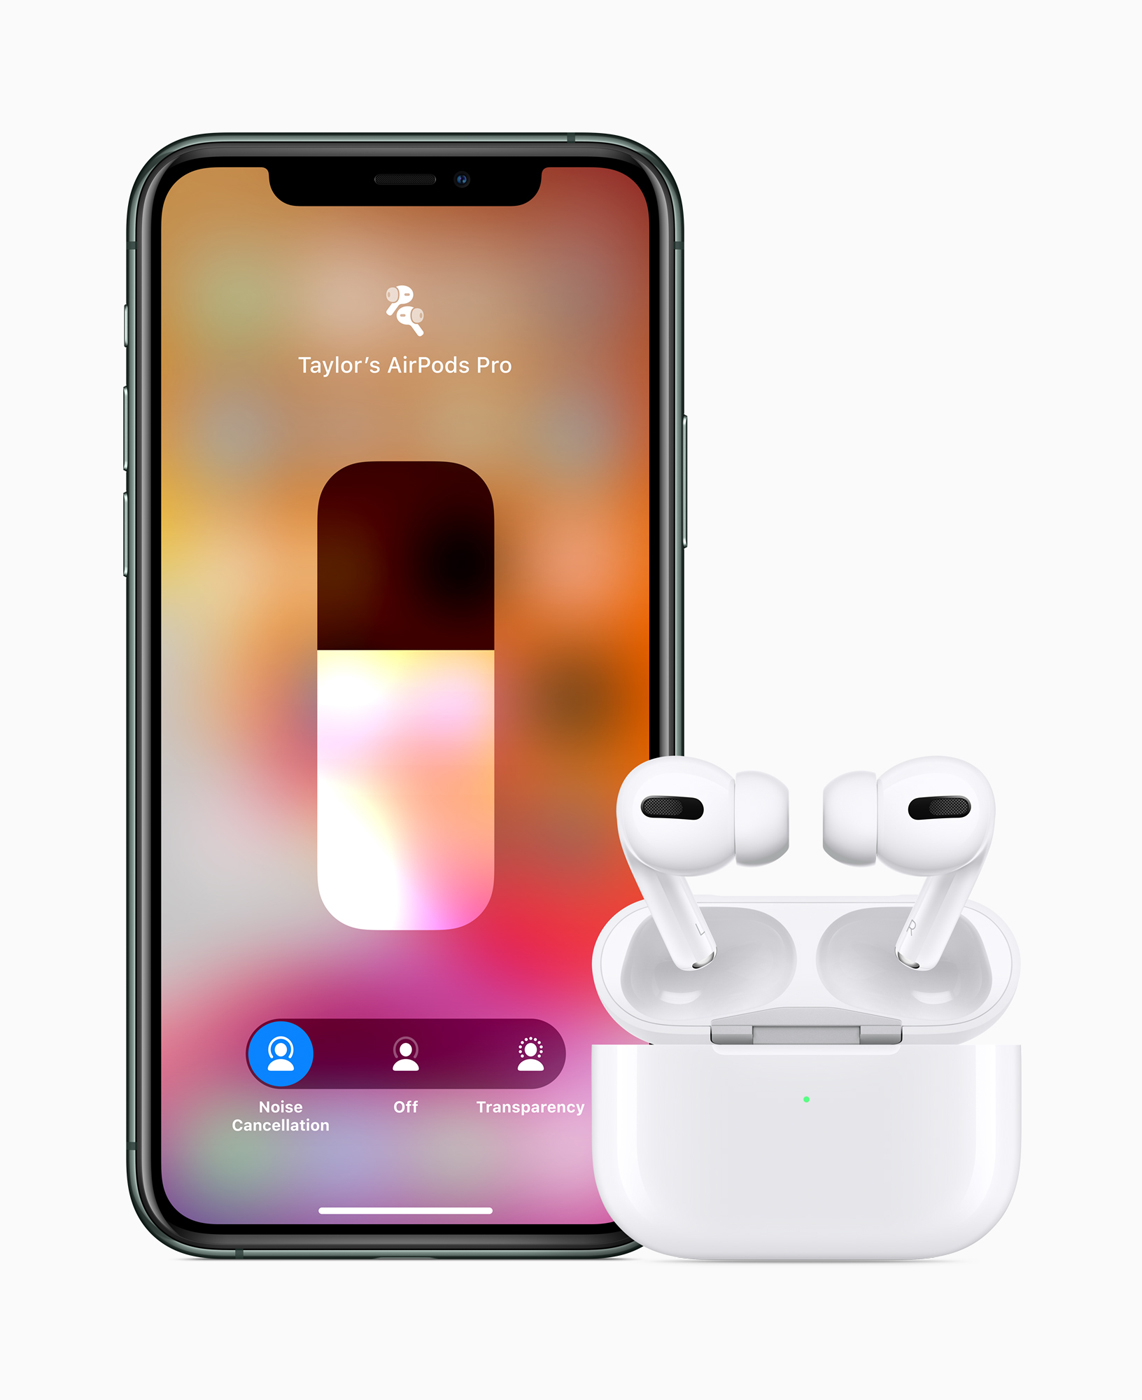 iPhone paired with AirPods Pro